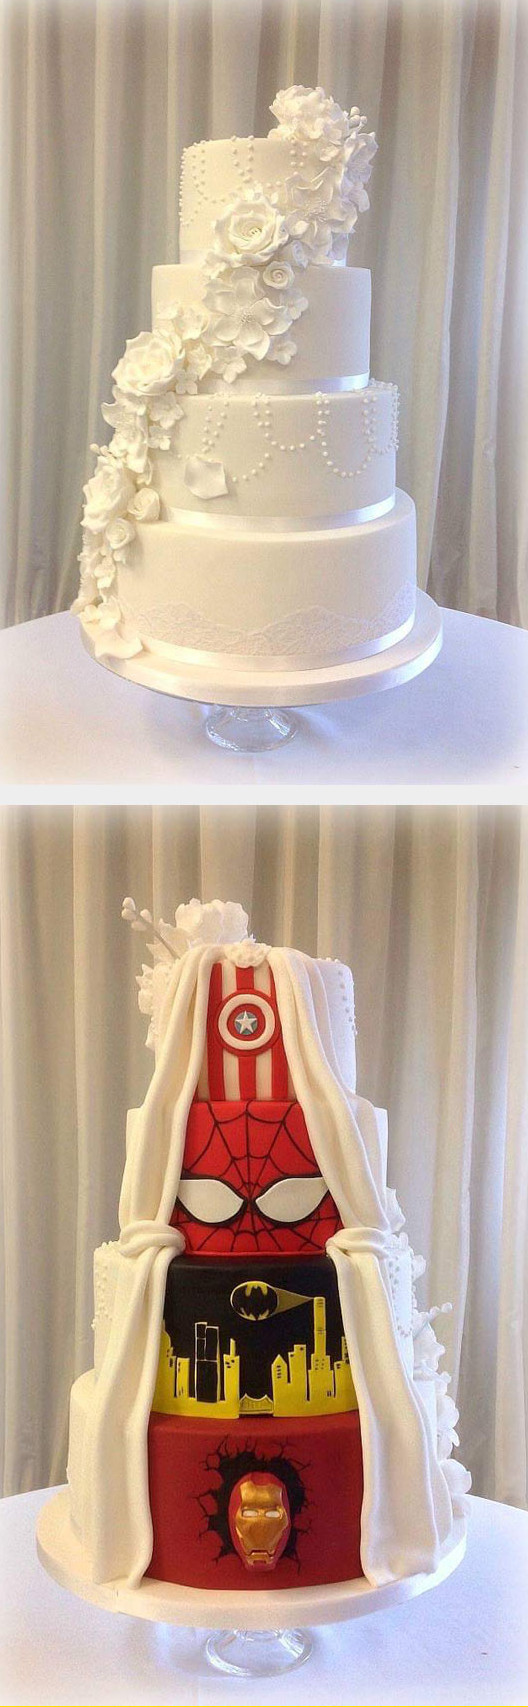 cool-cake-wedding-superhero-colors